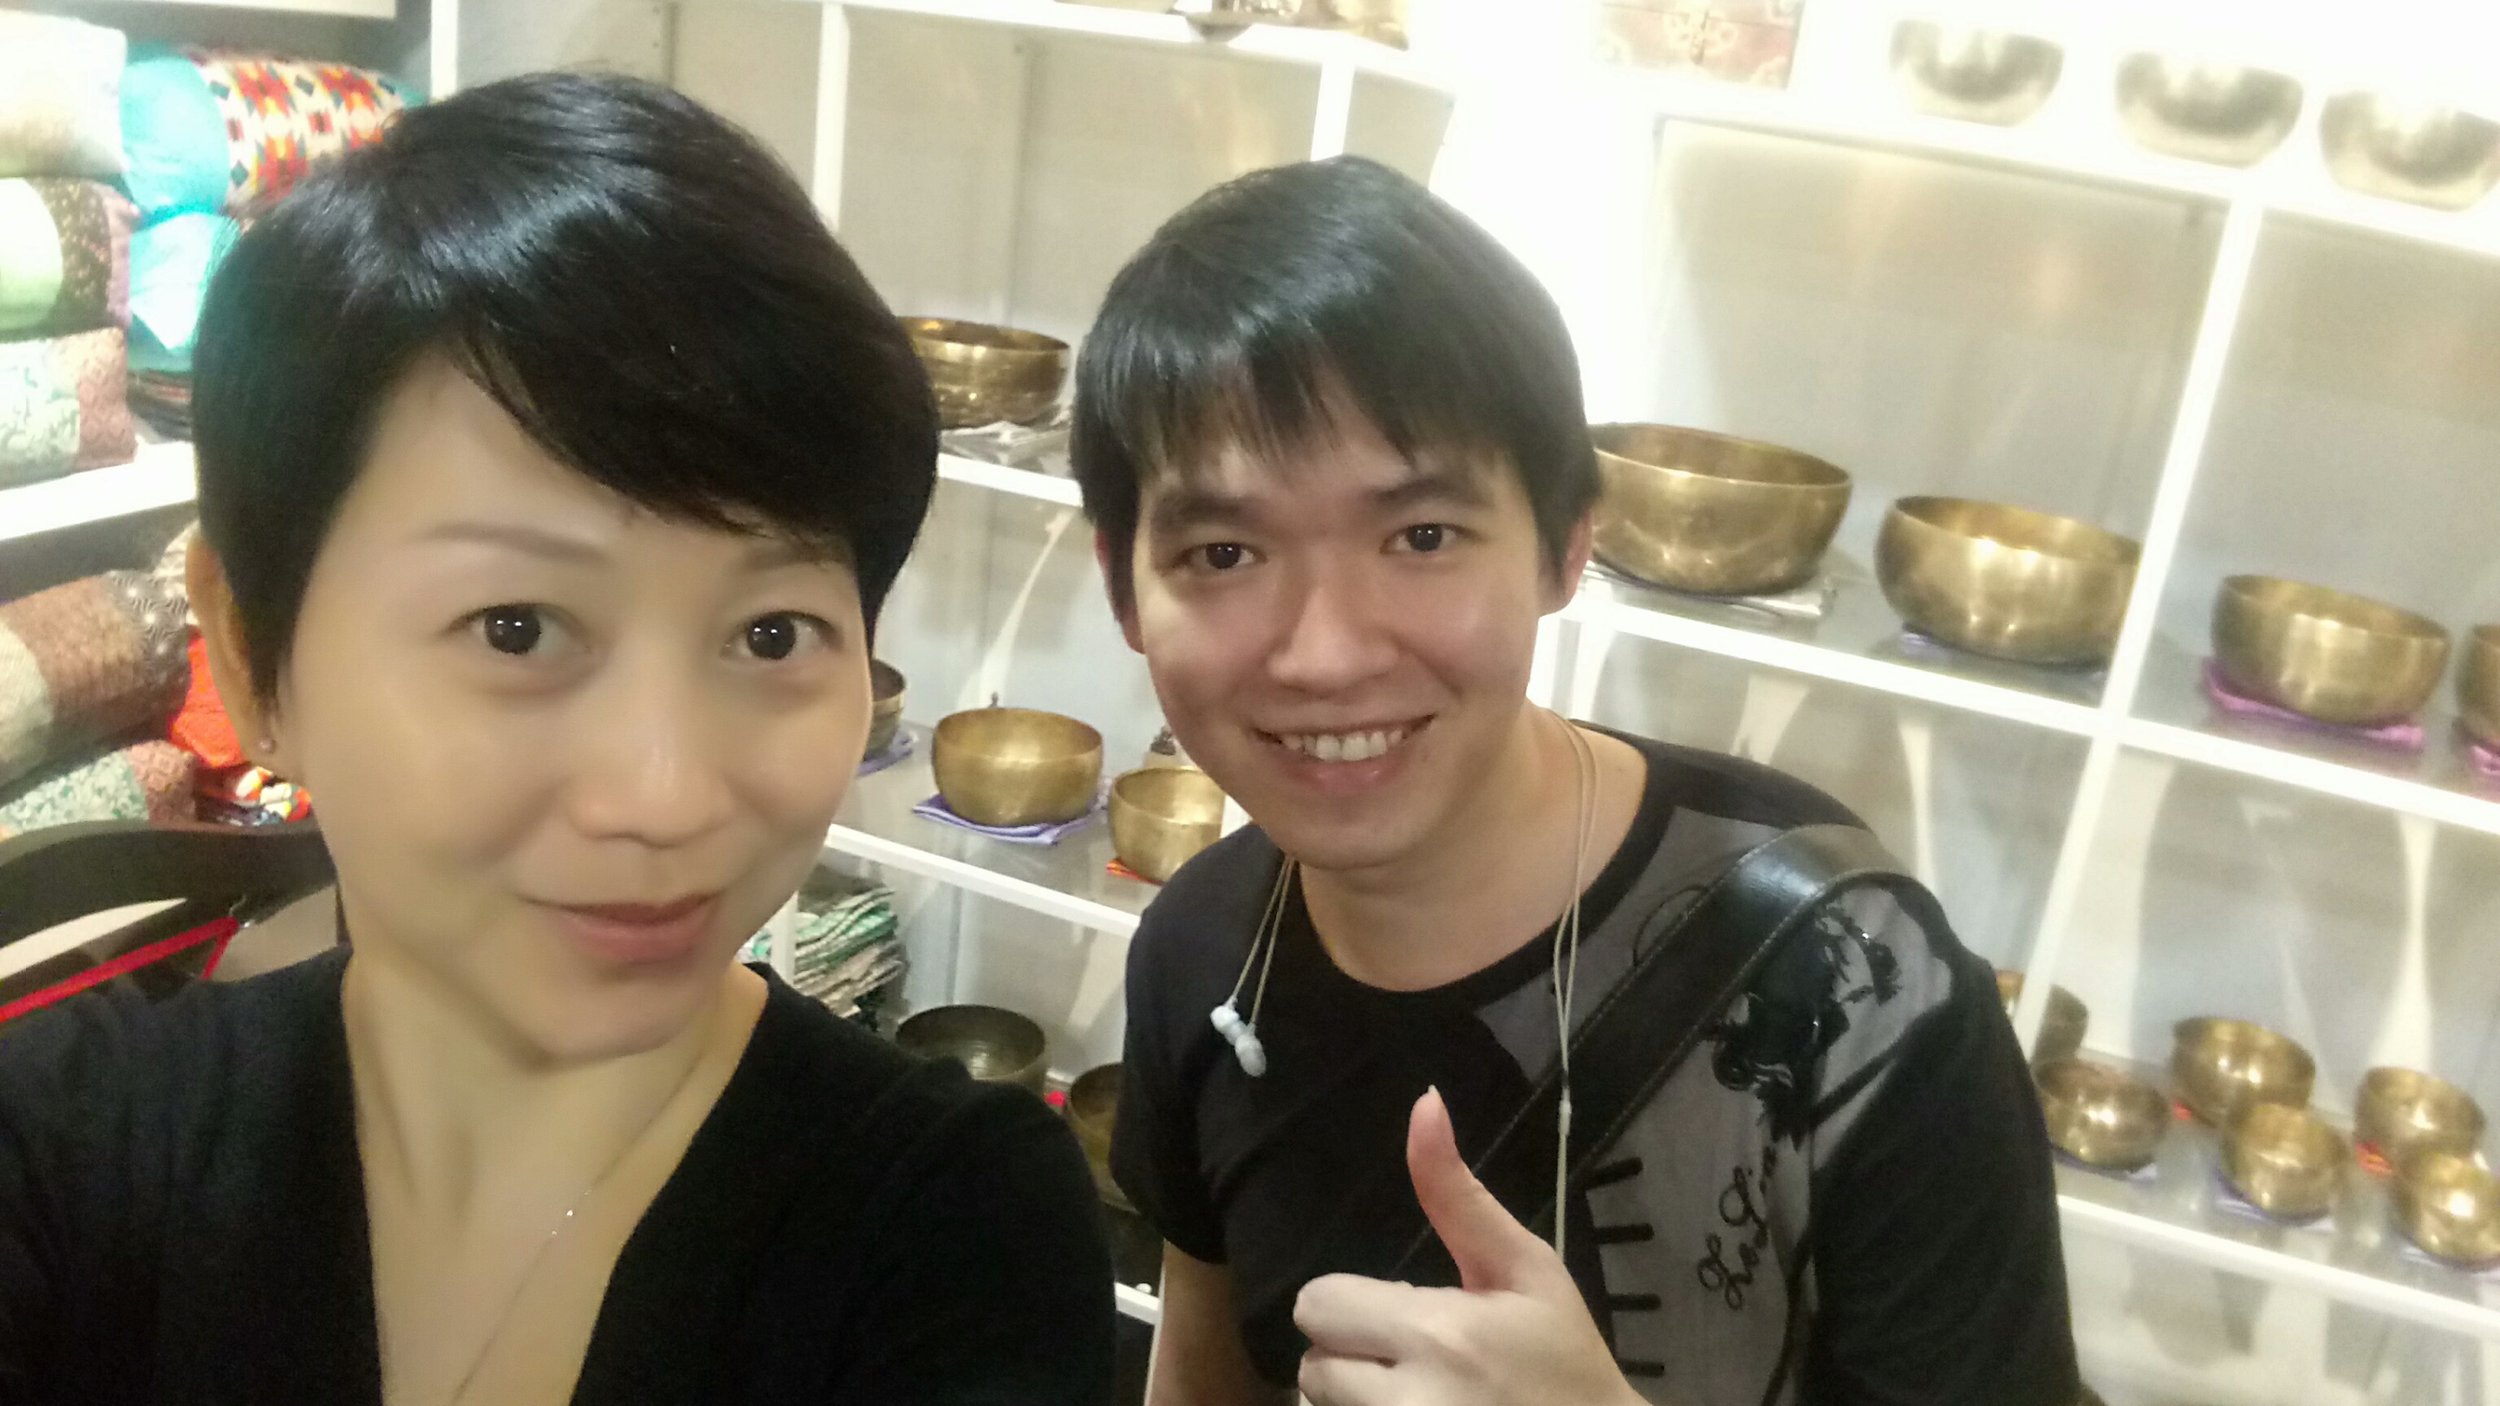 Lawrence and I at the Singing Bowl Gallery